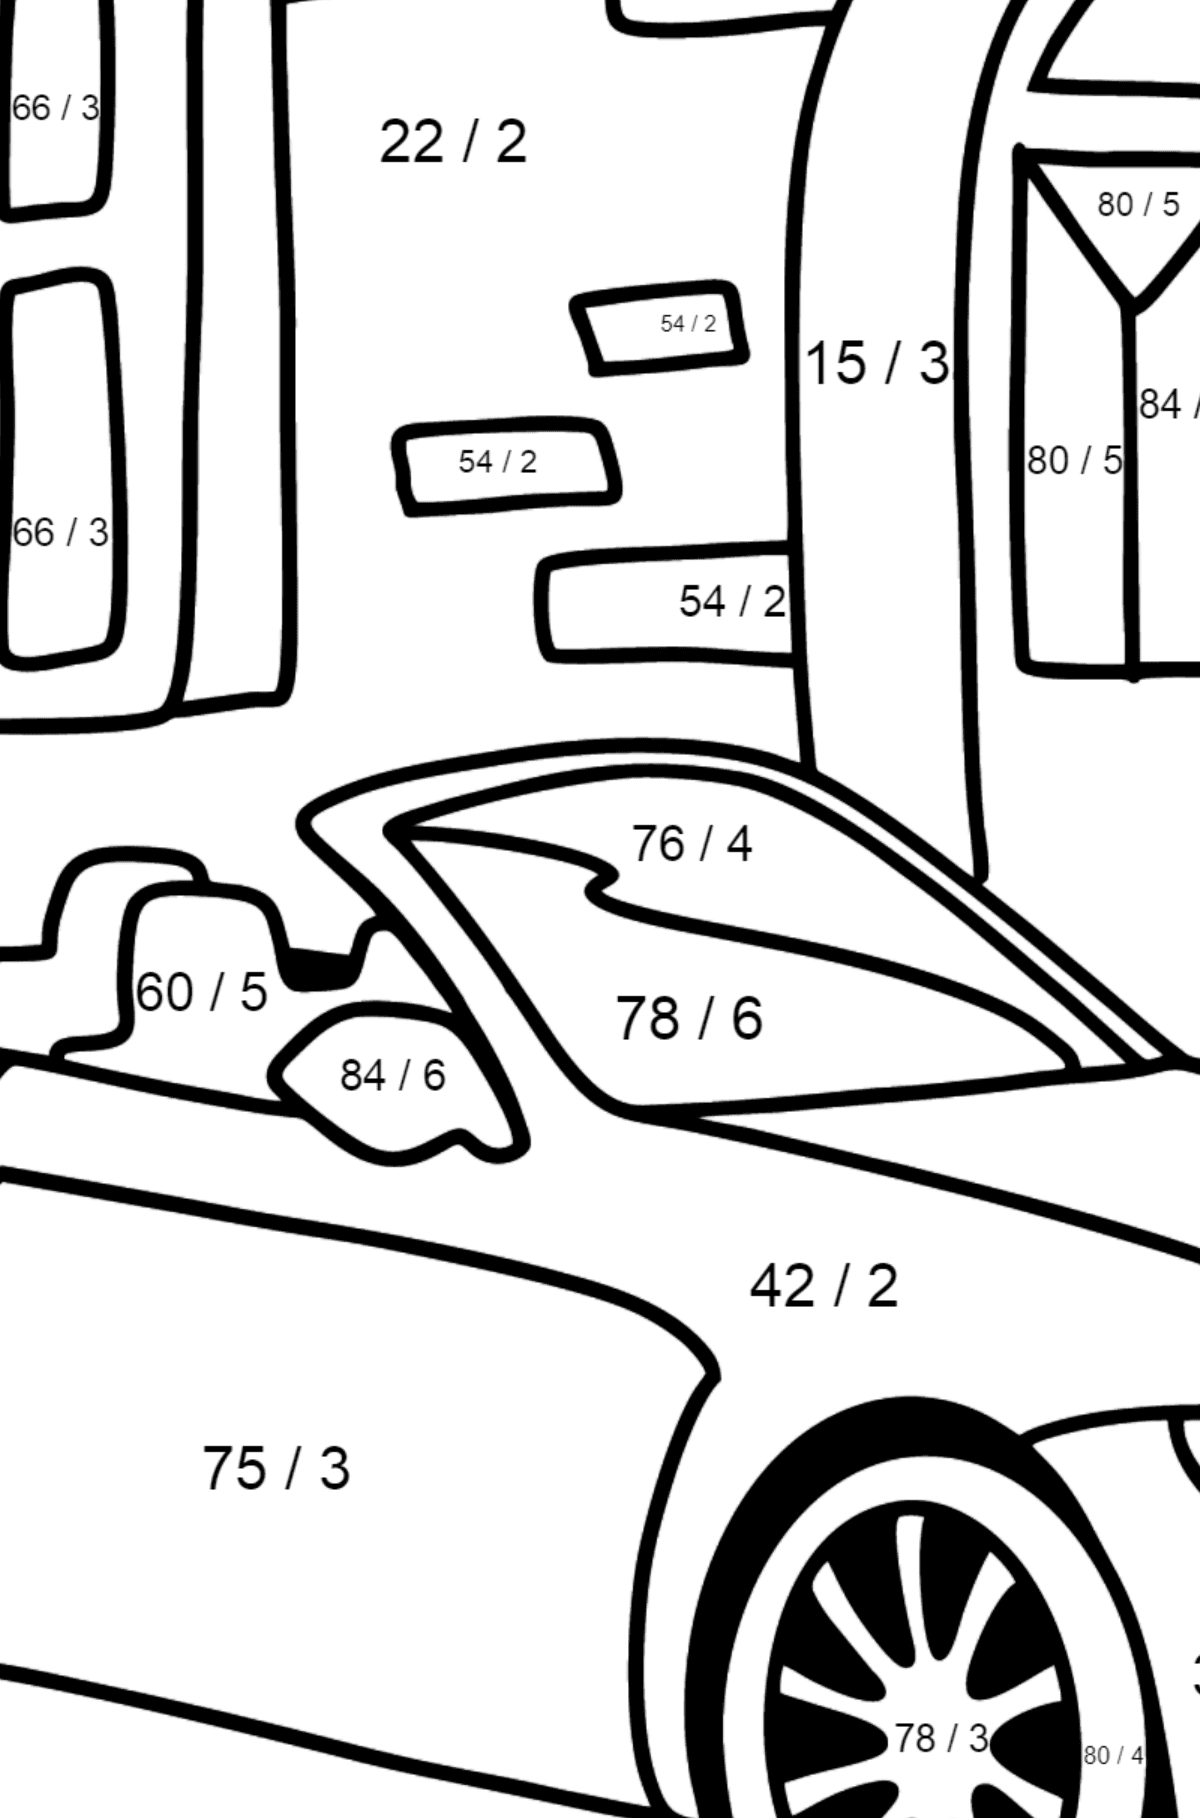 BMW Convertible coloring page - Math Coloring - Division for Kids